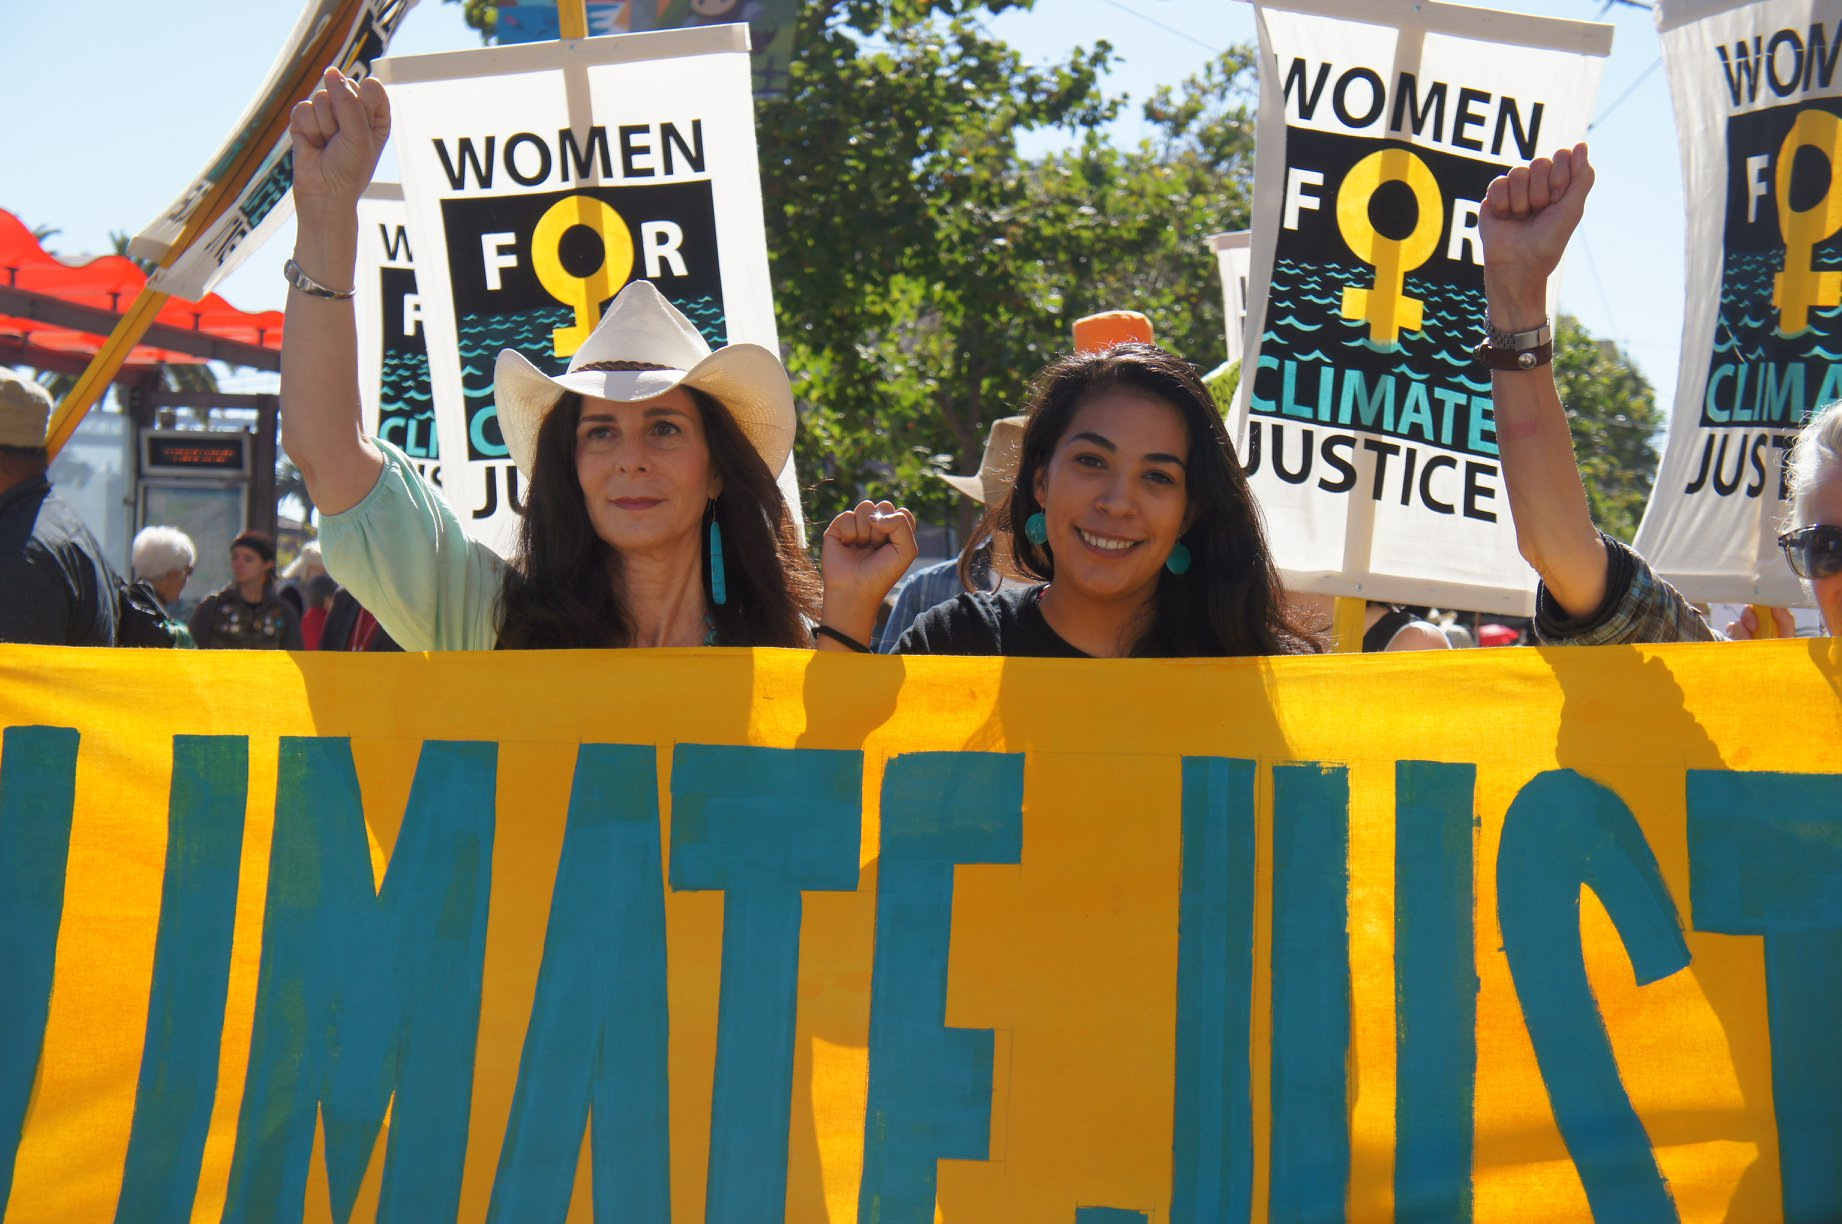 The Women's Earth and Climate Action Network (WECAN) took to the streets of San Francisco, California on September 8 as part of the worldwide Rise for Climate, Jobs, and Justice march.